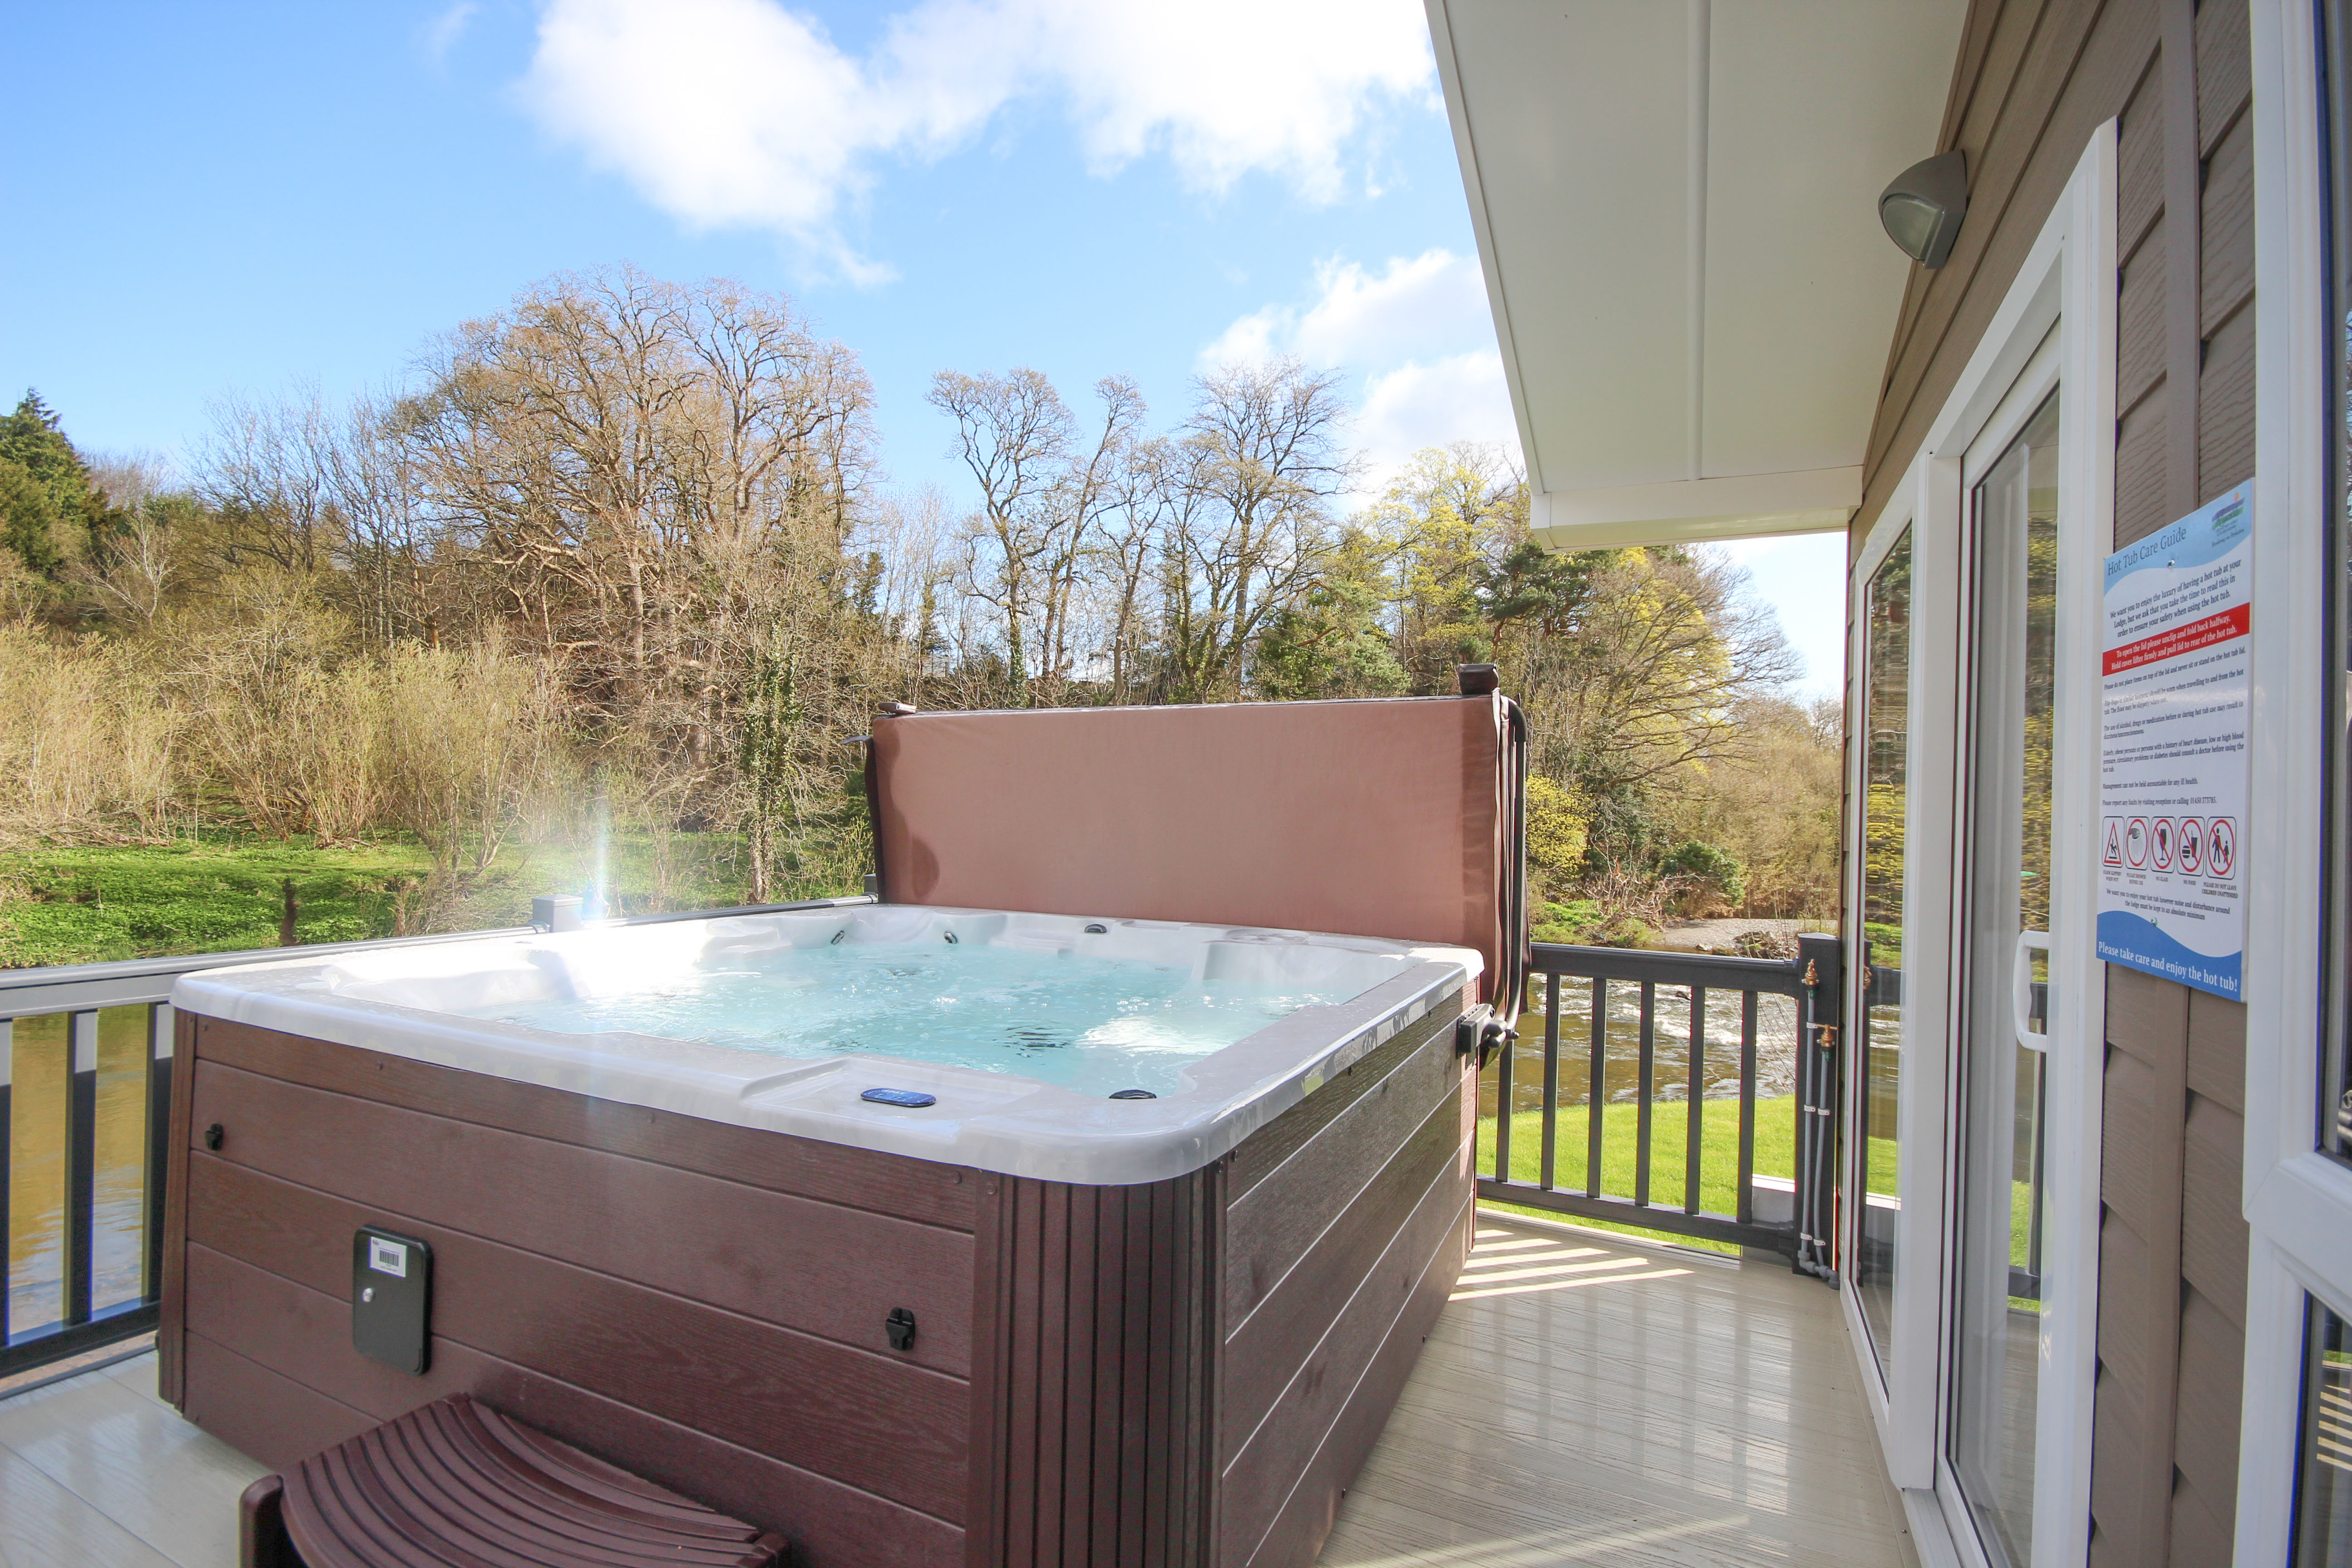 b tubs ebay prices saluspa spas bestway portable person x resource tub spa bn inflatable hot inch